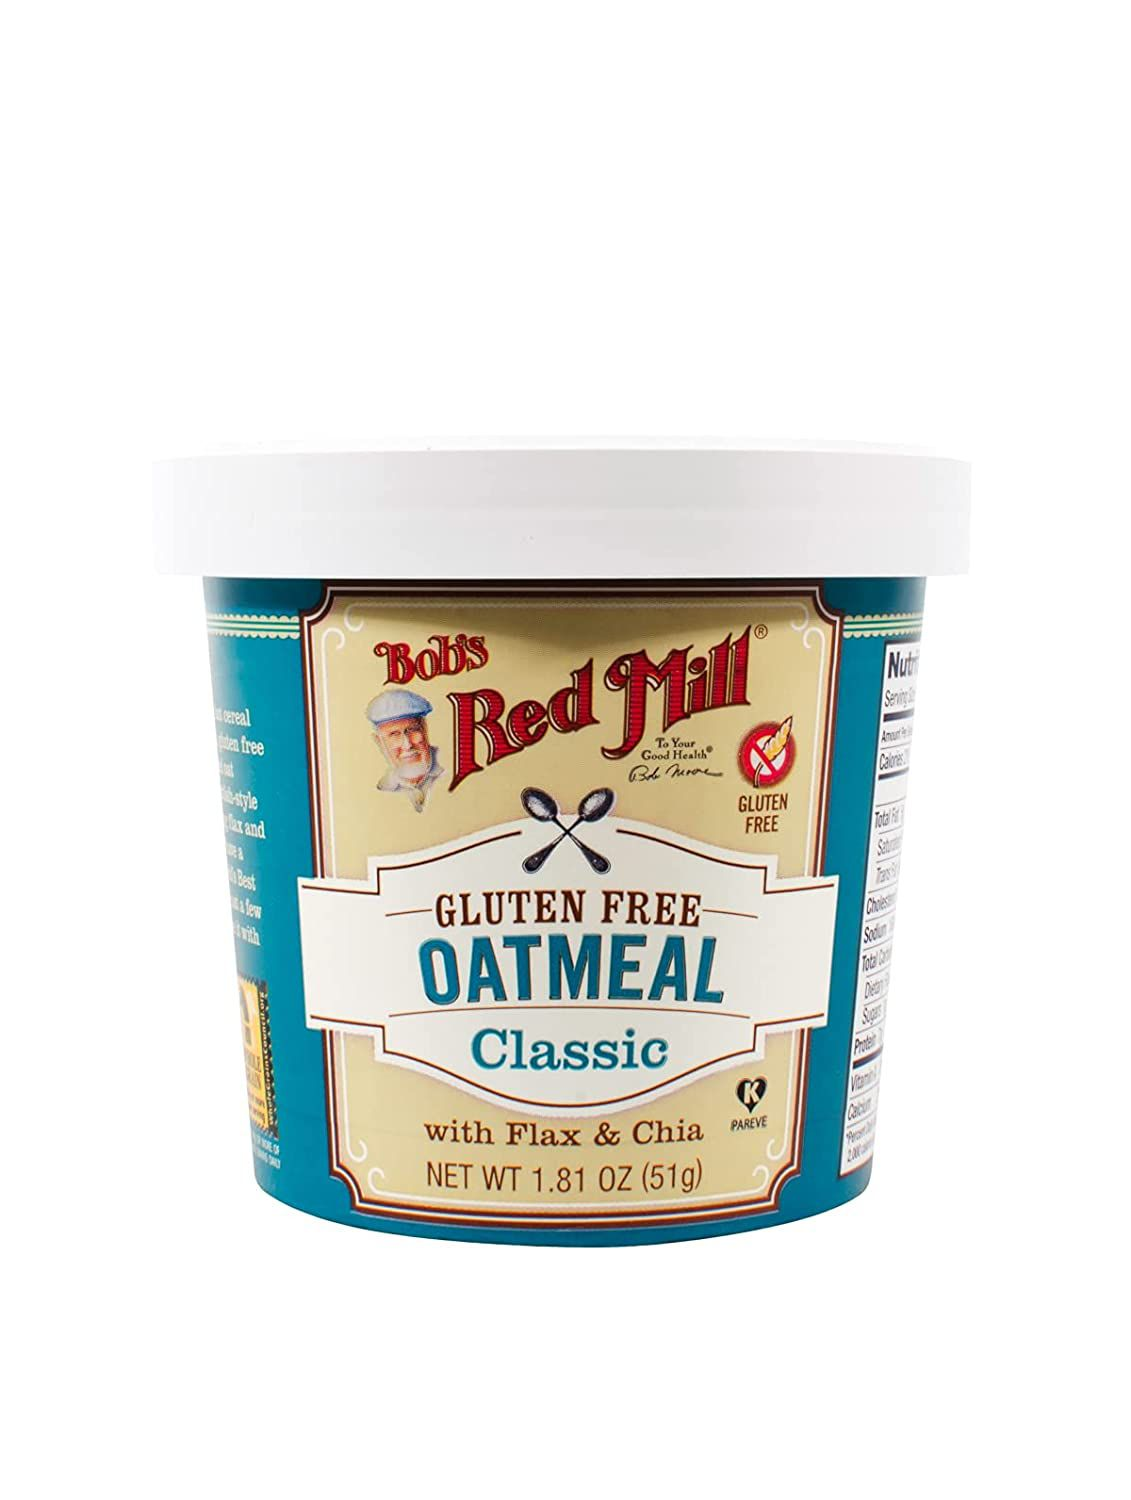 Bob's Red Mill Gluten-Free Classic Oatmeal with Flax and Chia